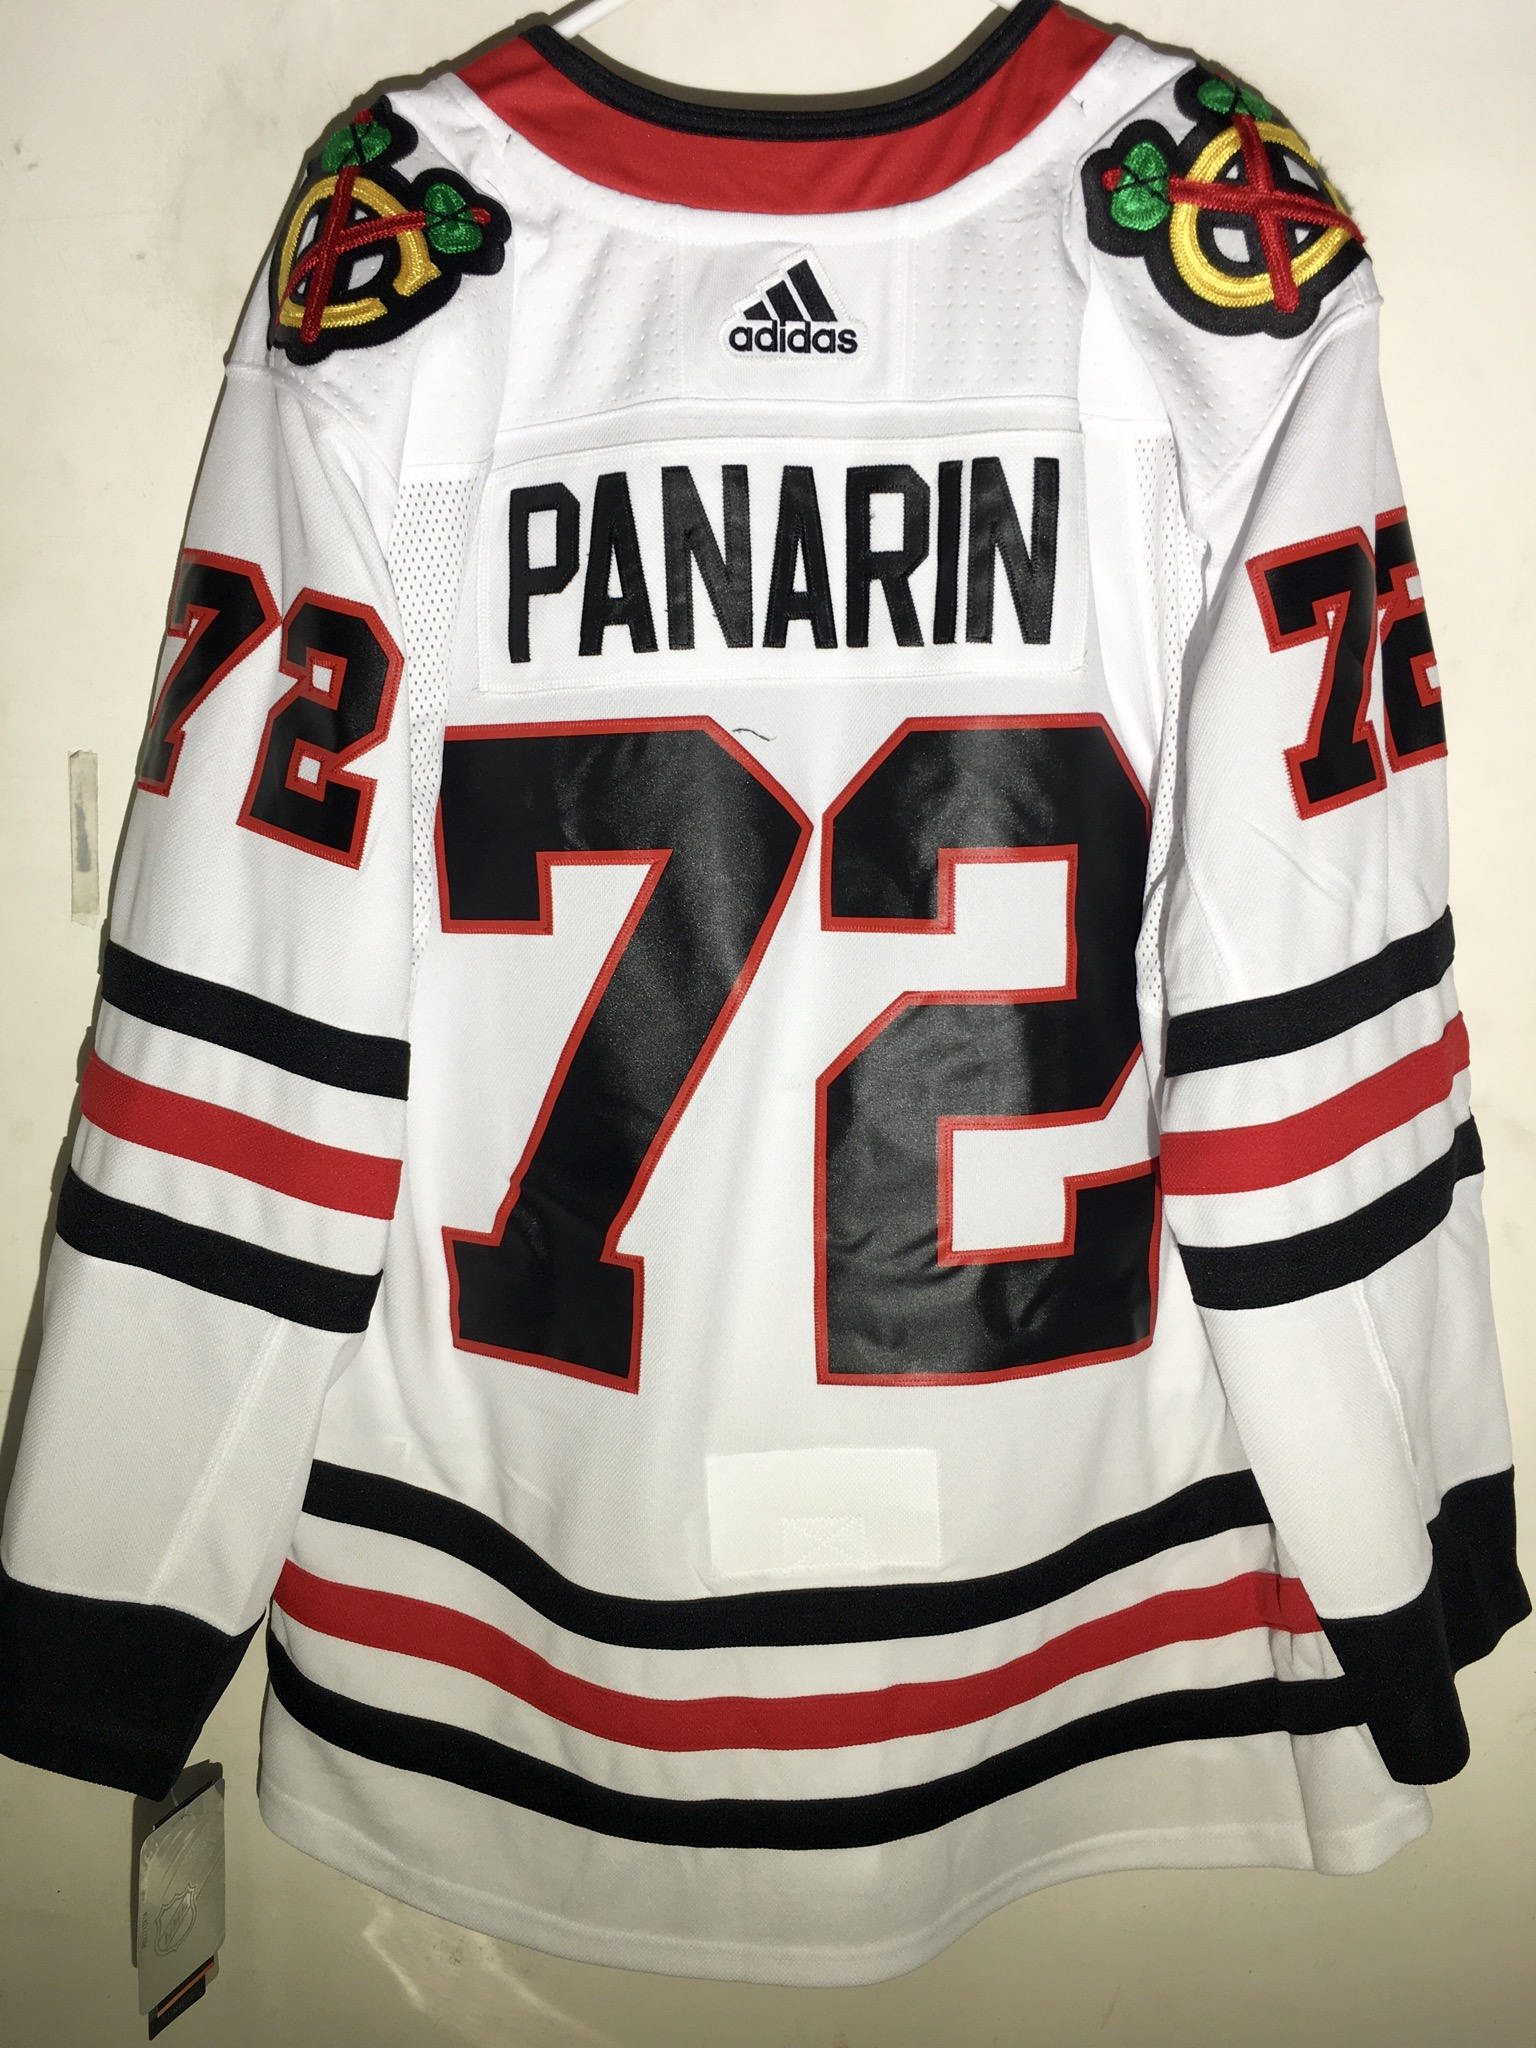 low priced a7496 a88a4 Details about adidas Authentic NHL Jersey Chicago Blackhawks Artemi Panarin  White sz 54